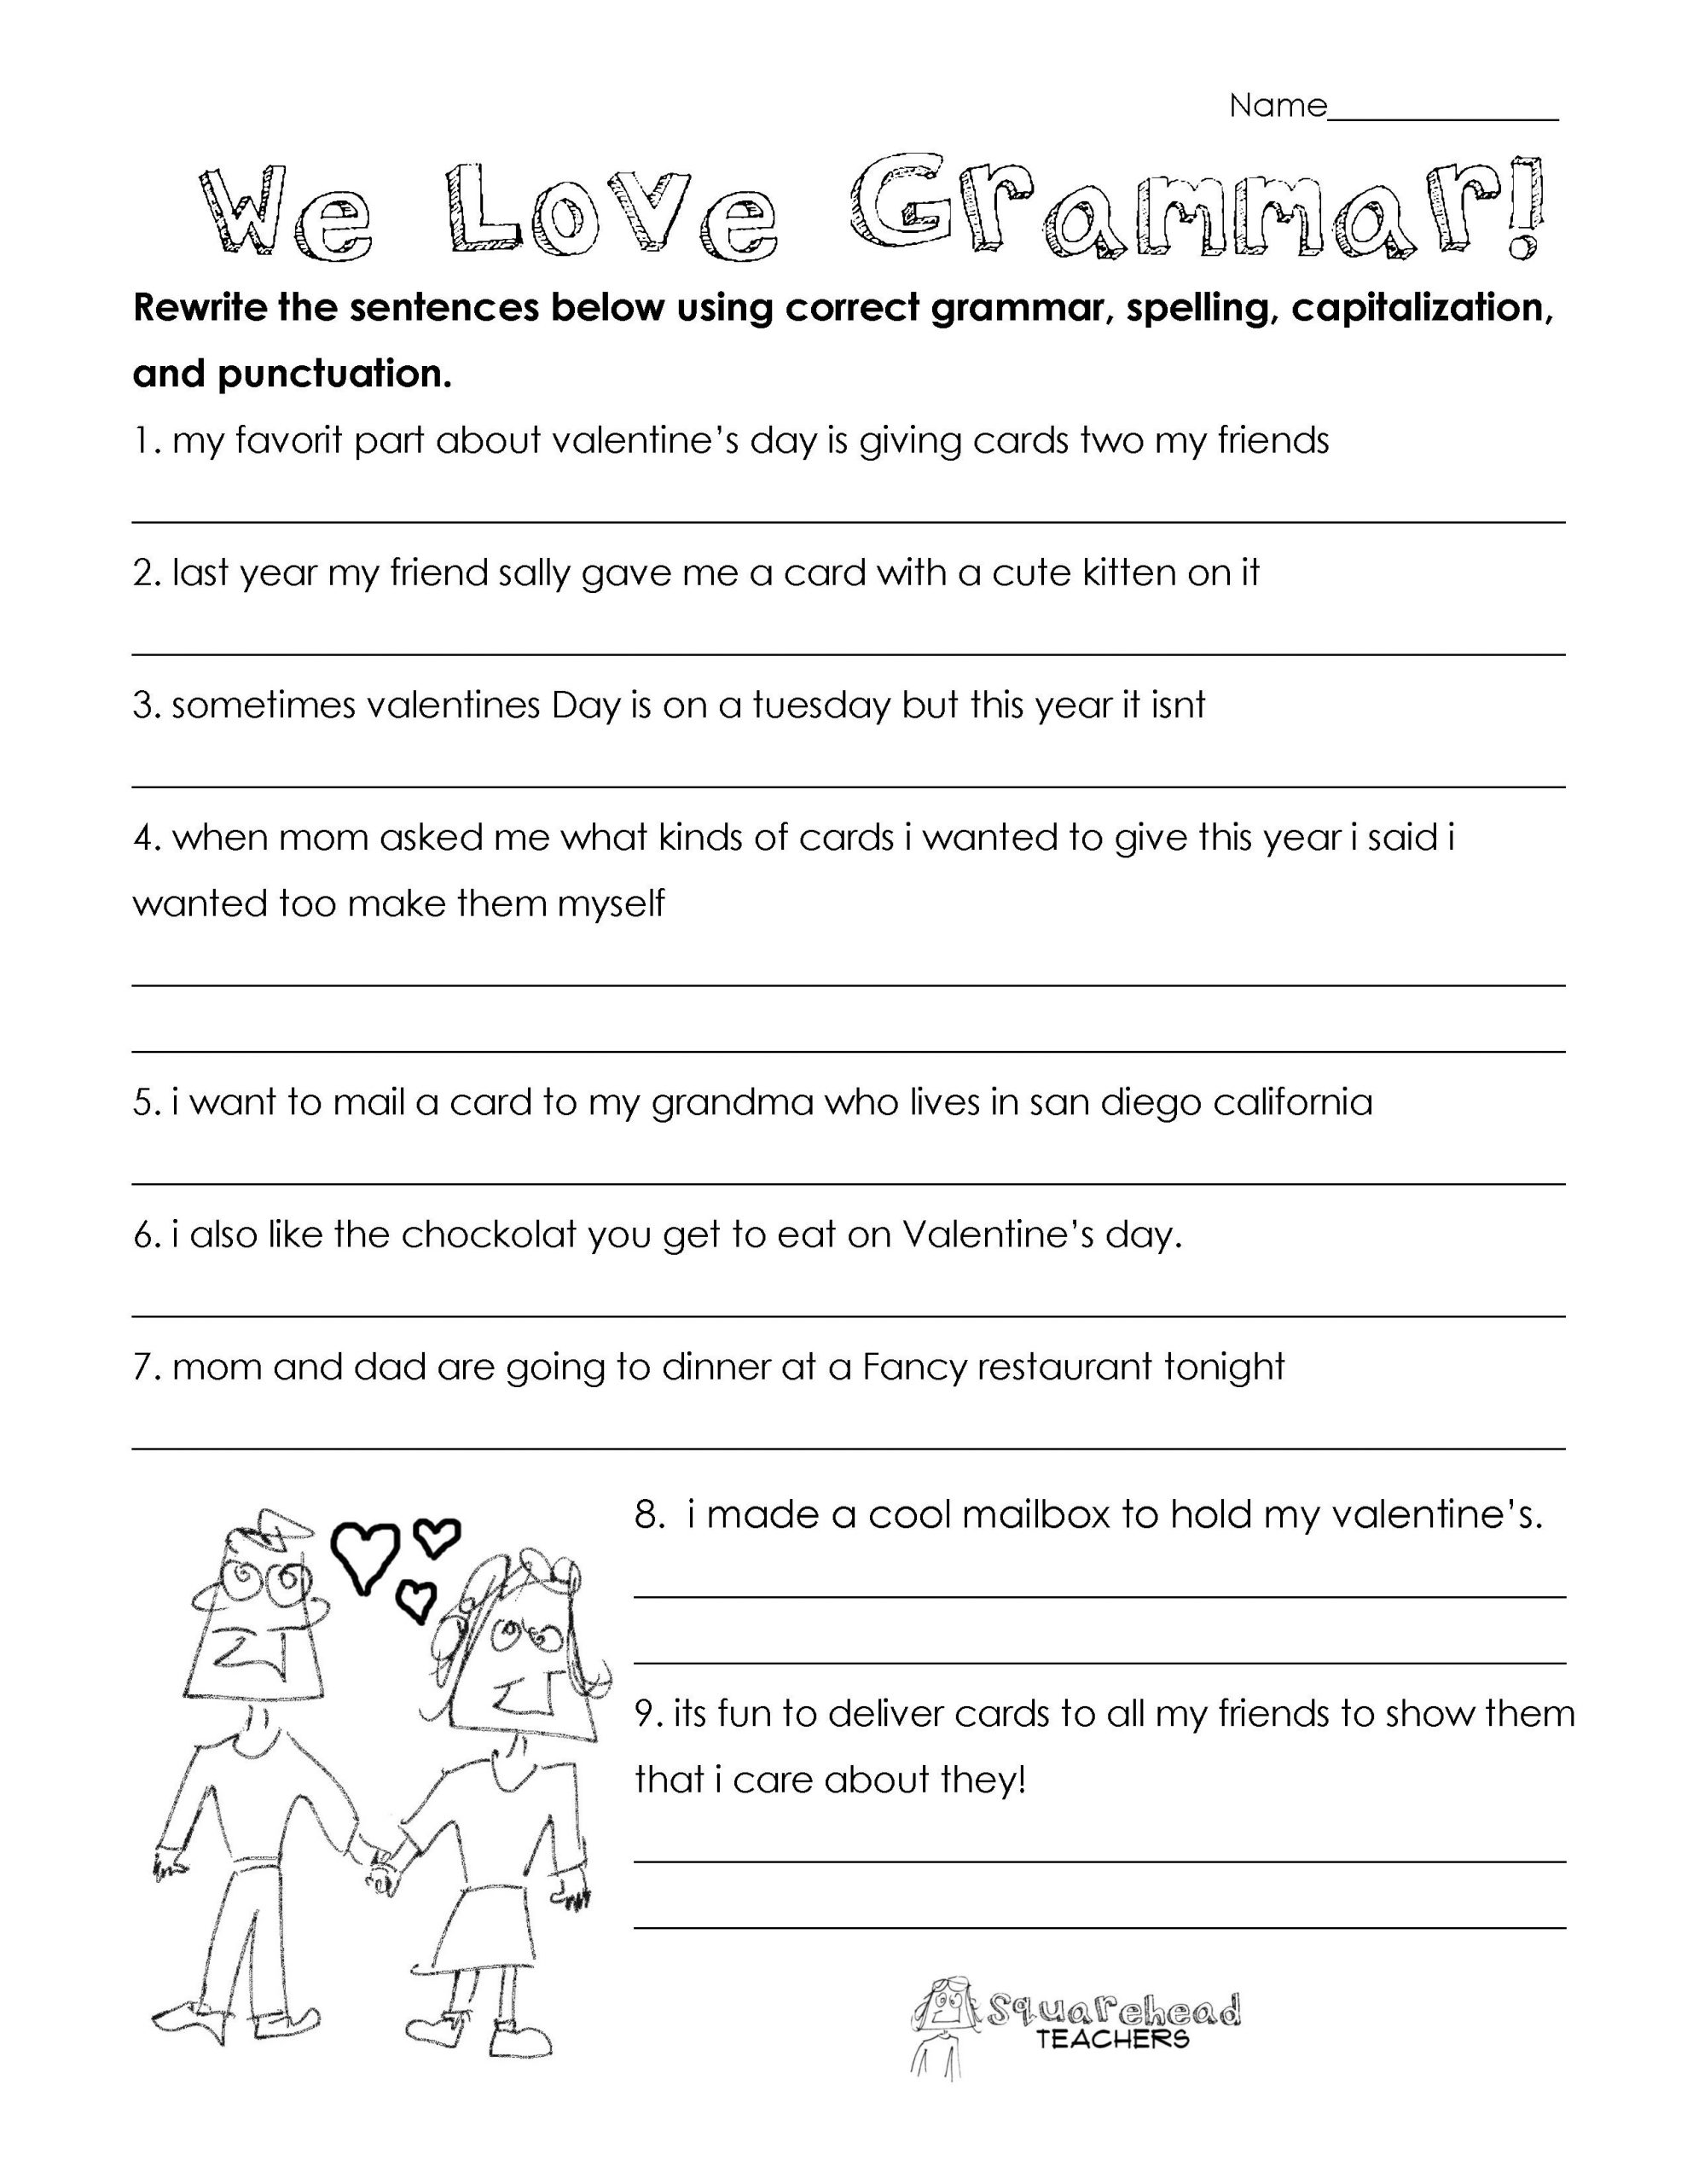 Comma Worksheets Middle School Valentine S Day Grammar Free Worksheet for 3rd Grade and Up